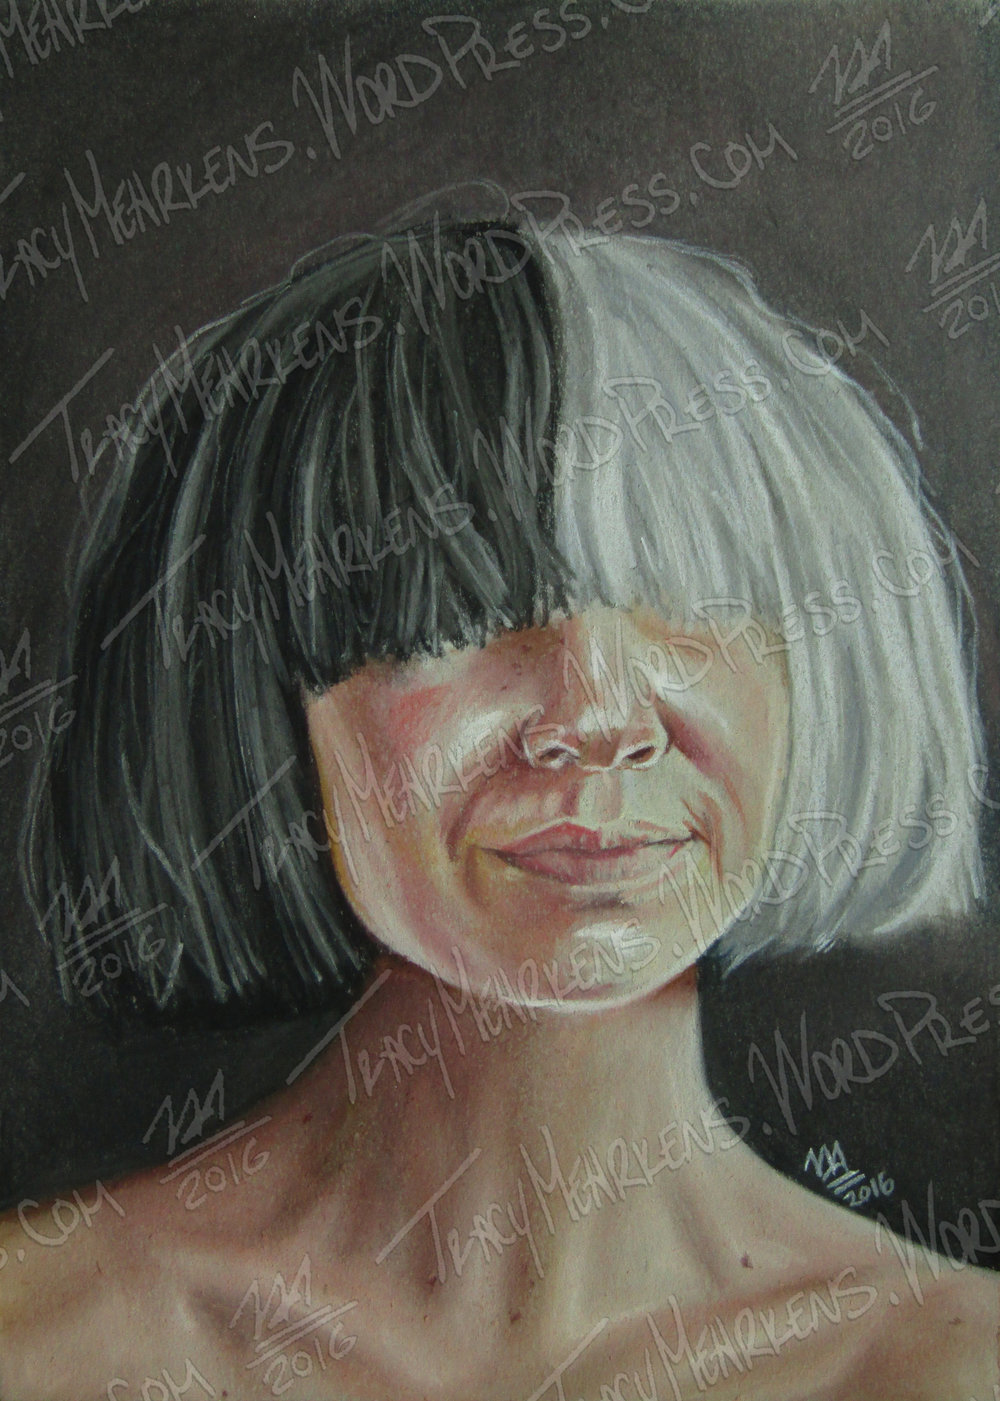 Copy of Sia. Pastel on Paper. 5x7 in. 2016.